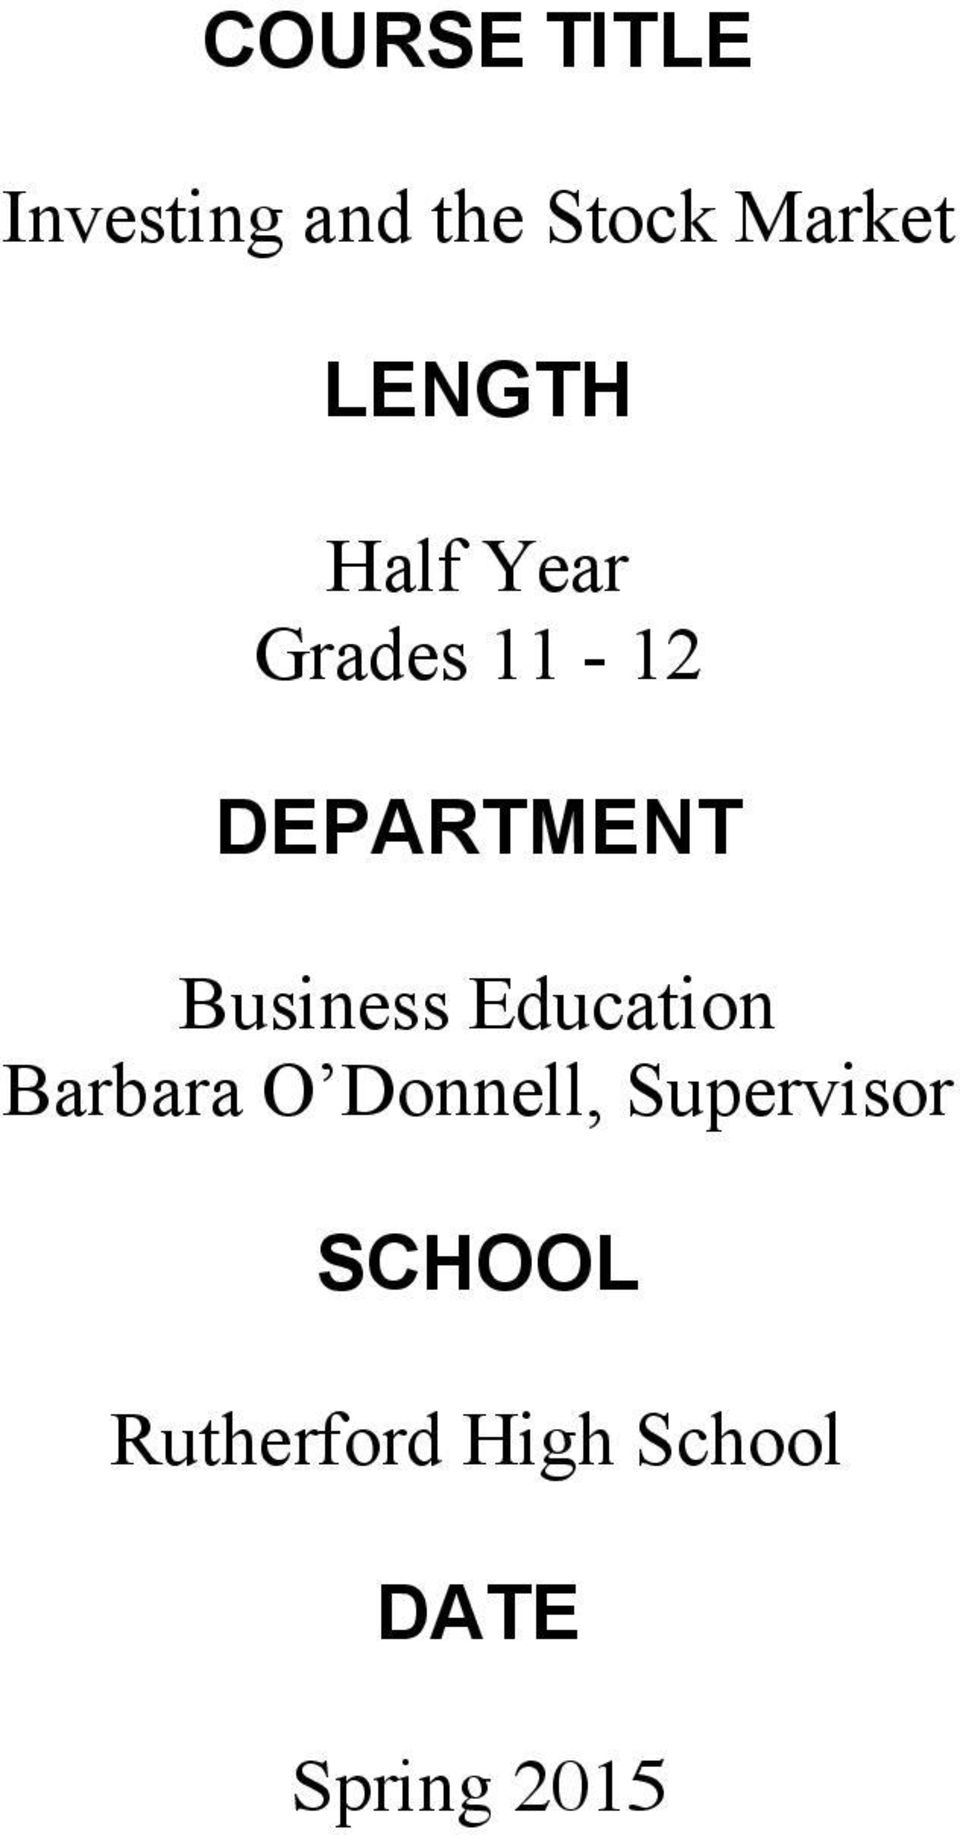 Business Education Barbara O Donnell,